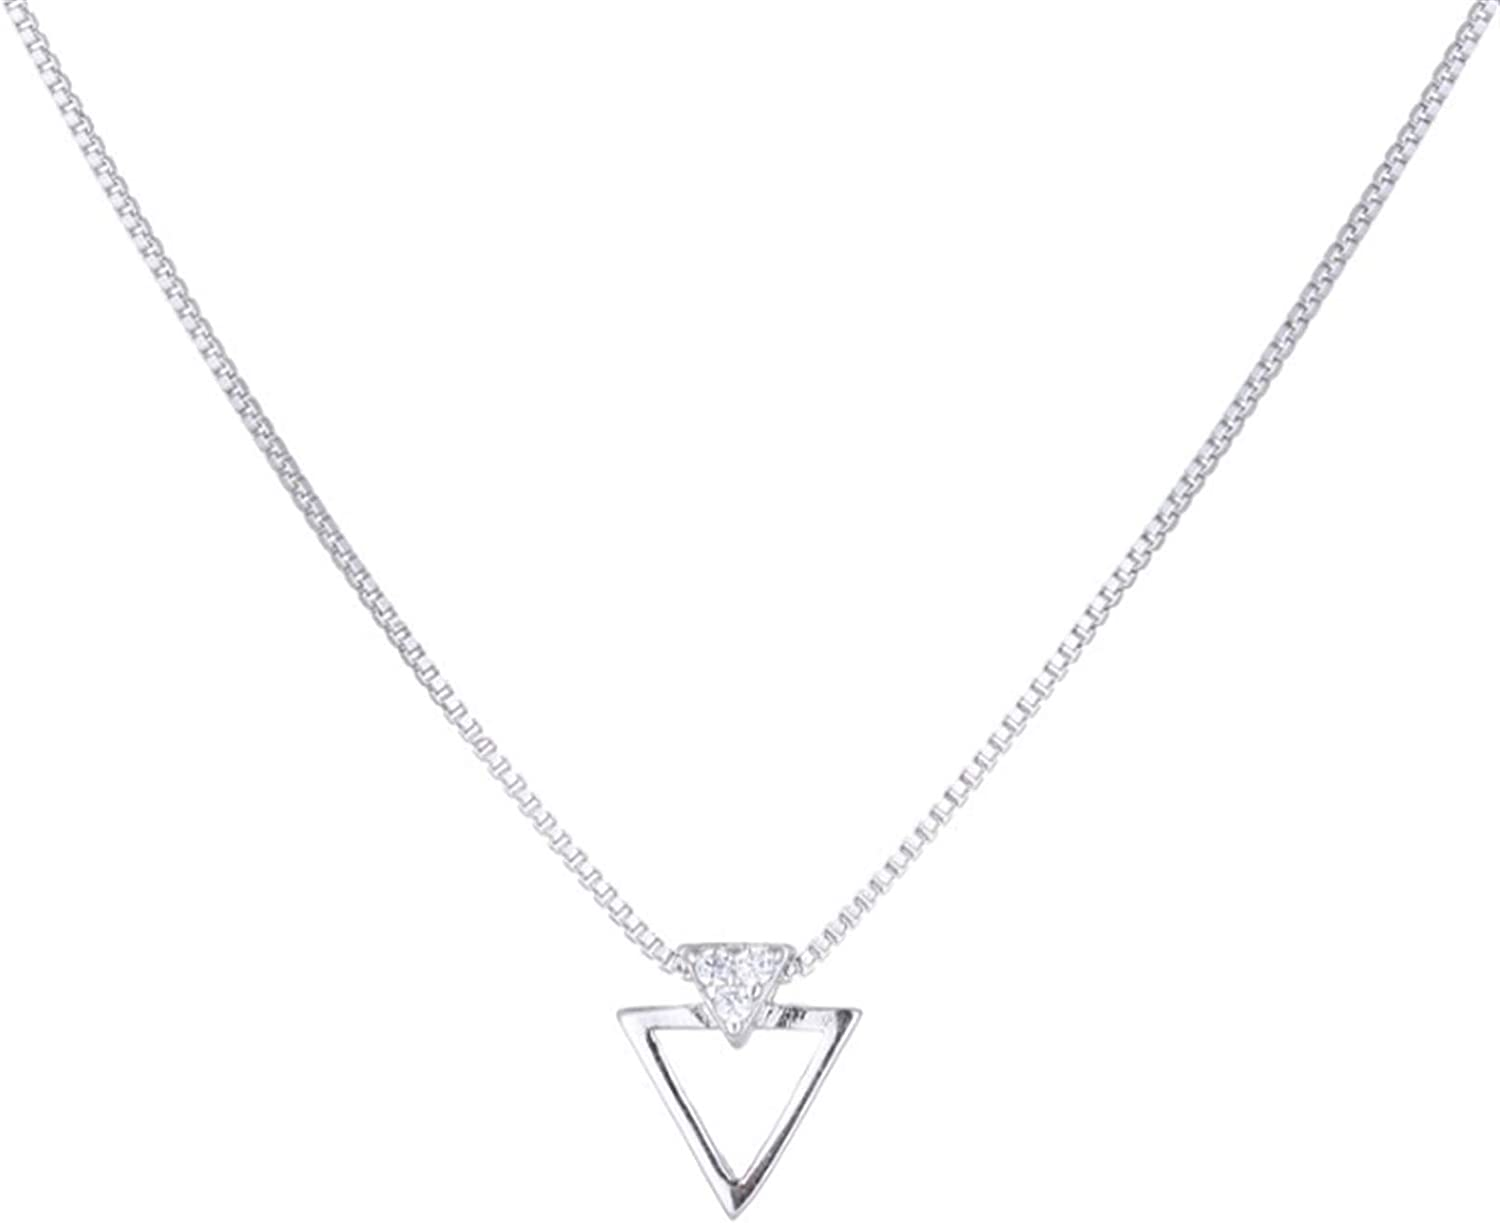 QWERBAM Christmas Jewelry Triangle Necklaces for Women Femme Gifts Charm Necklaces Collar